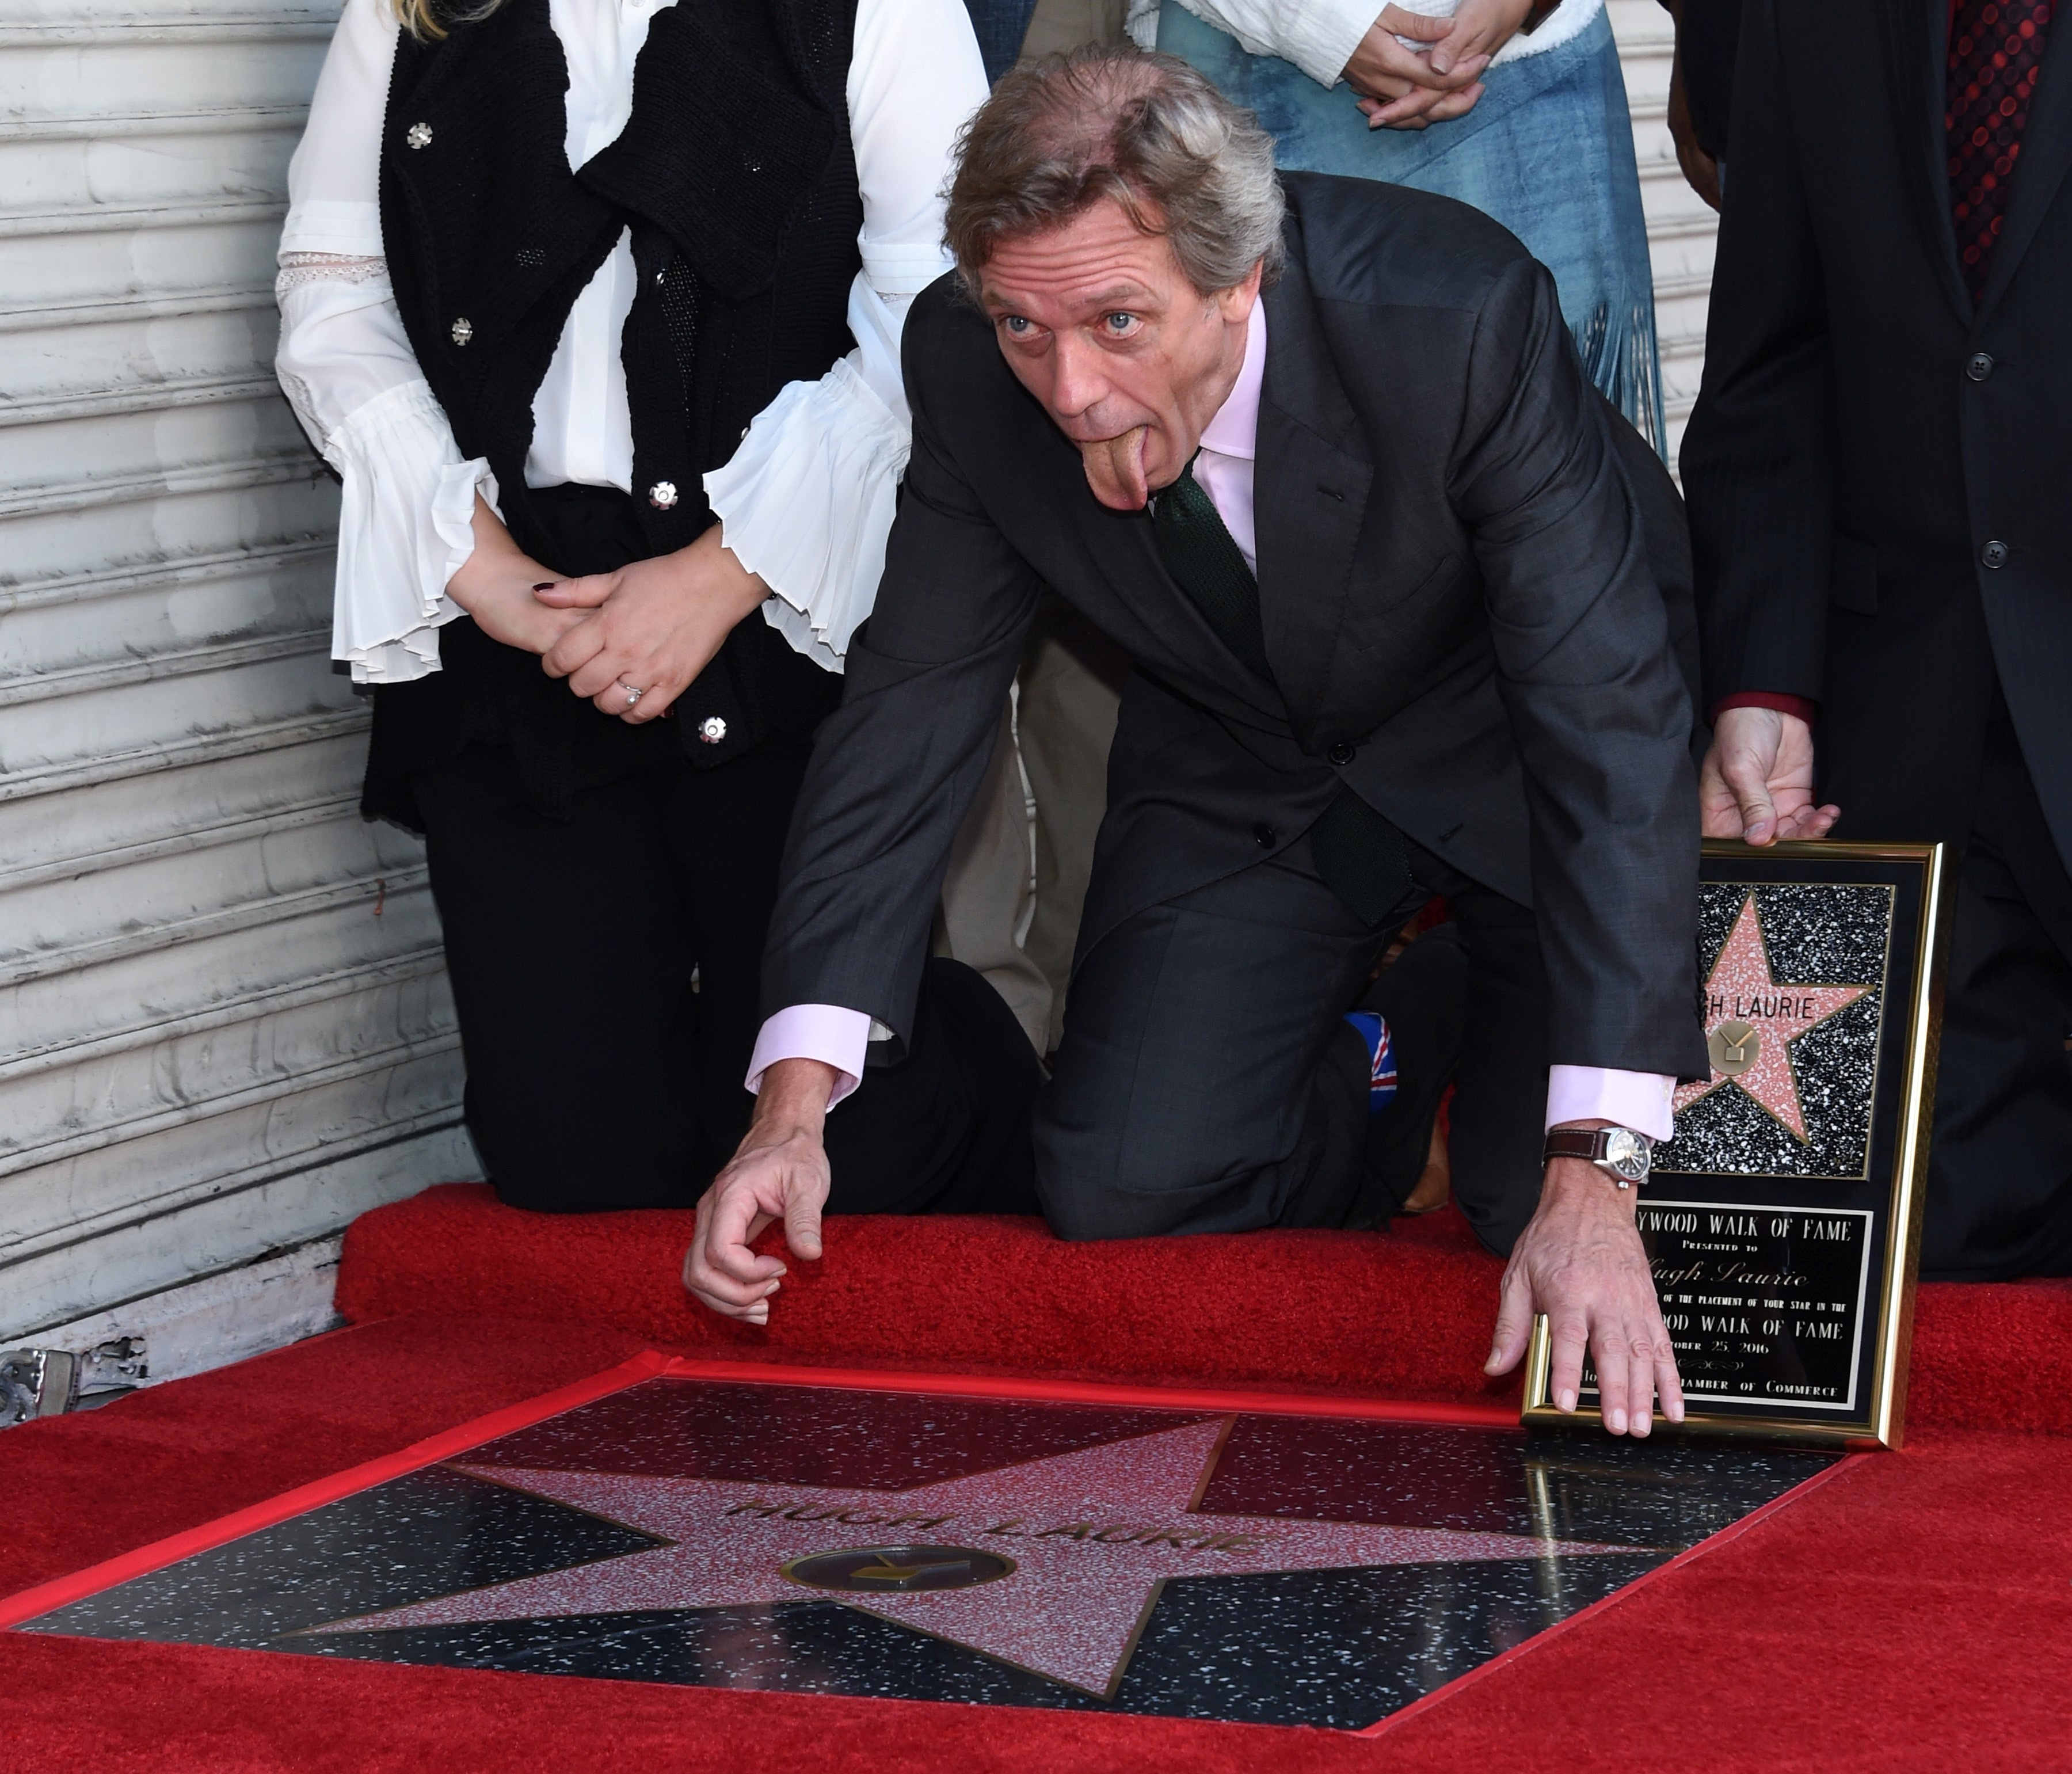 Hugh Laurie gets a star on the Walk of Fame in Hollywood on Oct. 25, 2016.